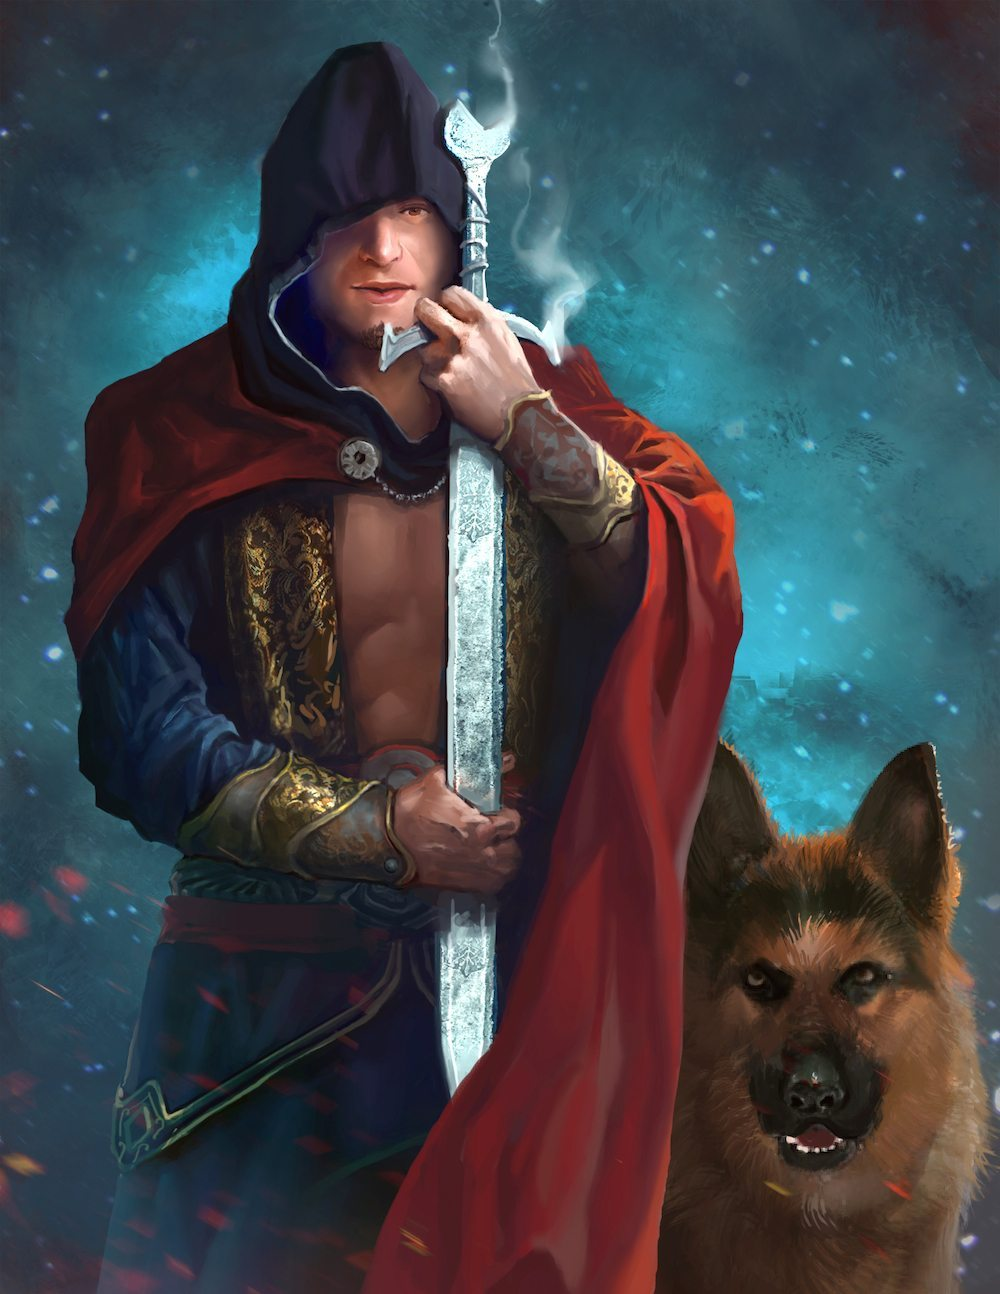 An Assassin S Creed Inspired Portrait Artcorgi Commission Art